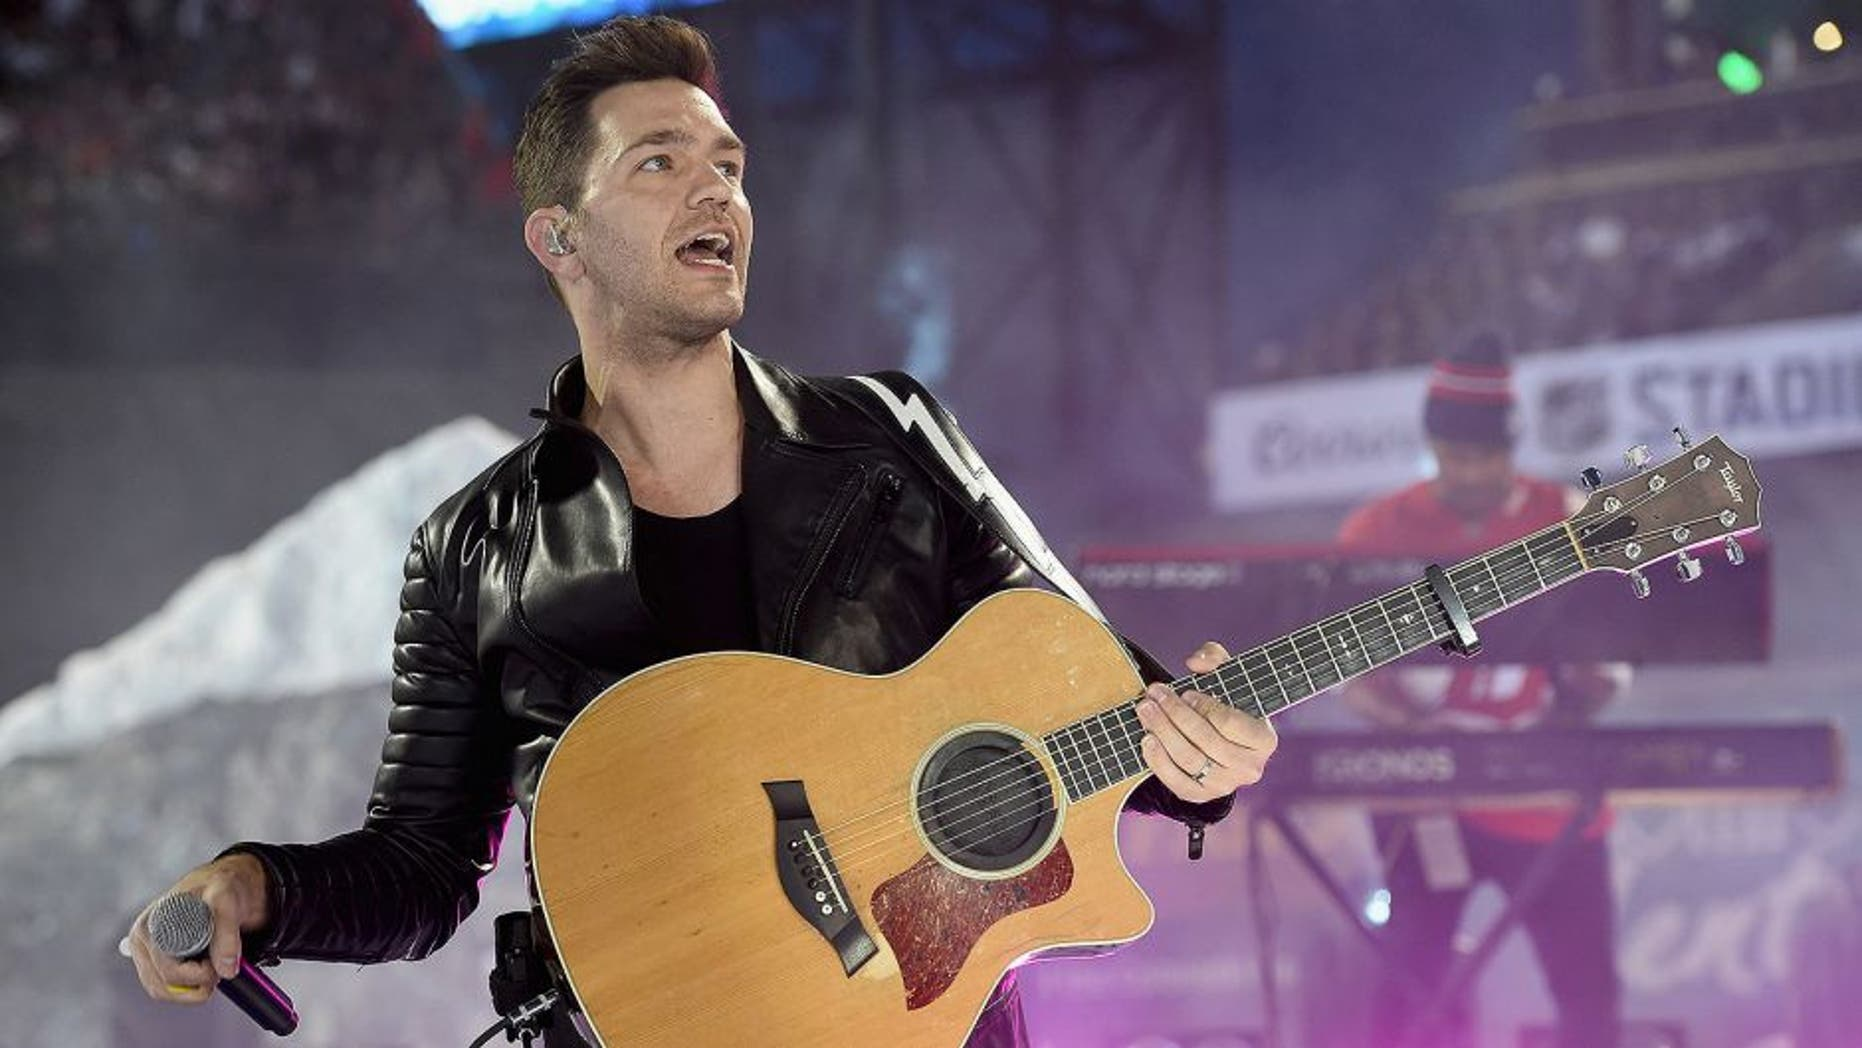 DENVER, CO - FEBRUARY 27: Recording artist Andy Grammer performs during pregame of the 2016 Coors Light Stadium Series game between the Detroit Red Wings and the Colorado Avalanche at Coors Field on February 27, 2016 in Denver, Colorado. (Photo by Brian Babineau/NHLI via Getty Images)